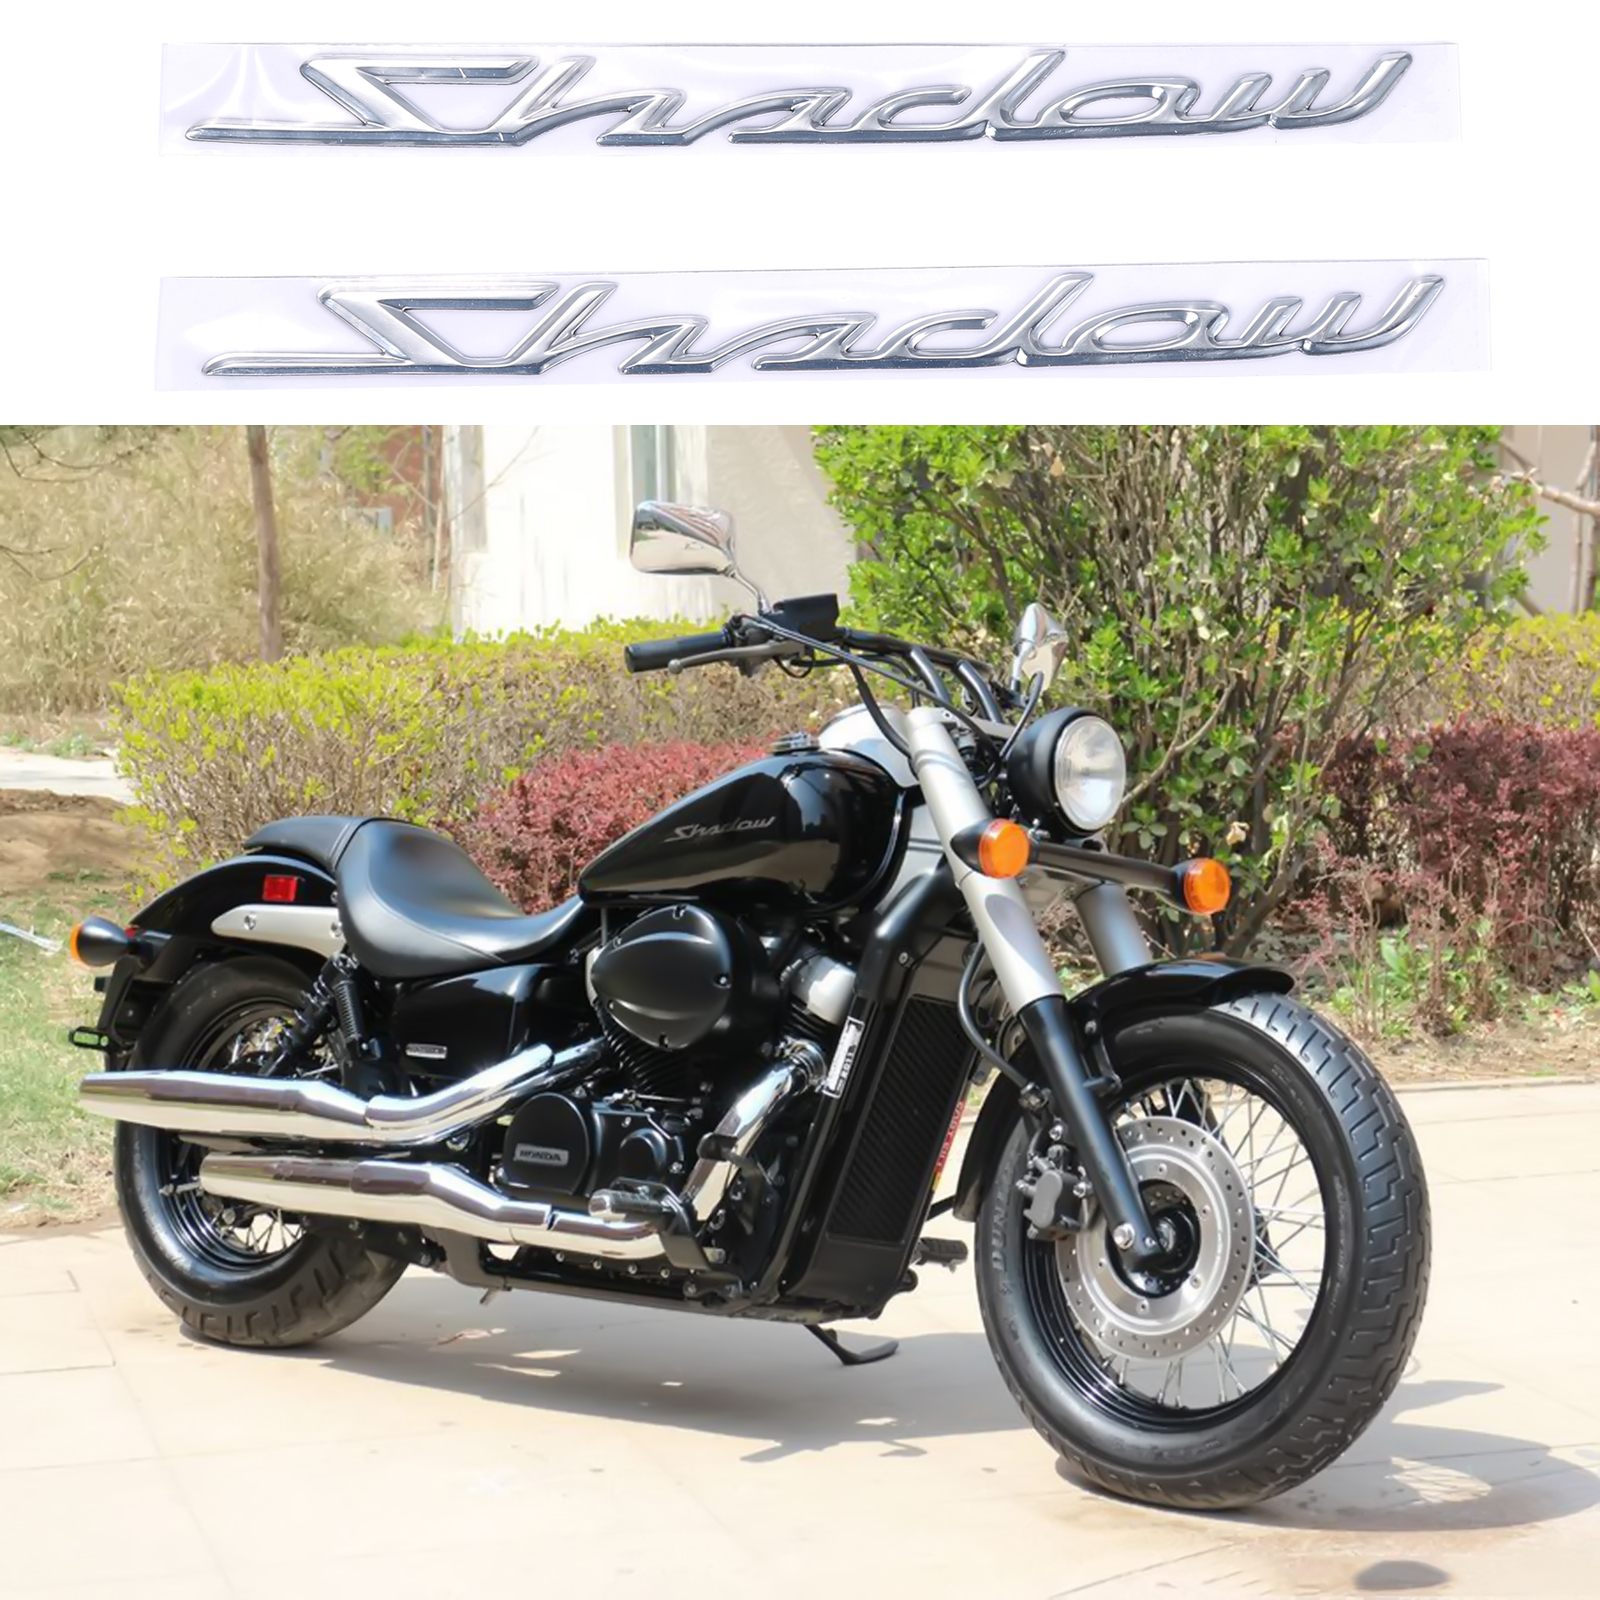 motorcycle 3d chrome abs gas tank decal sticker decal sticker for honda shadow ebay. Black Bedroom Furniture Sets. Home Design Ideas